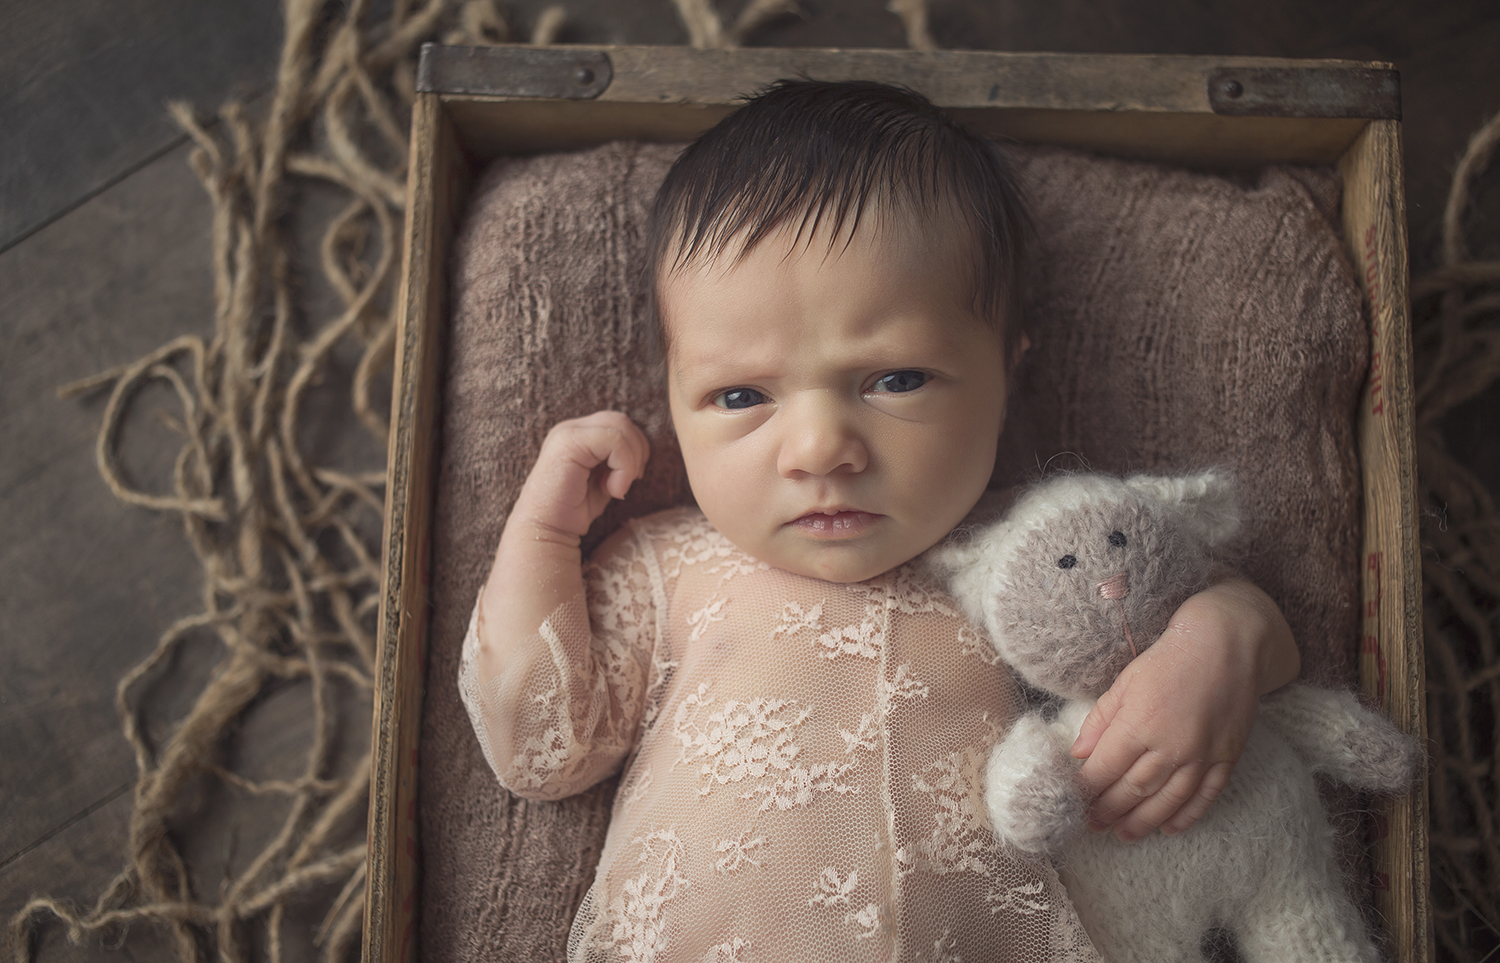 gorgous black hair newborn baby girl posed in vintage wood crate with lamb lovie and lace romper with eyes open